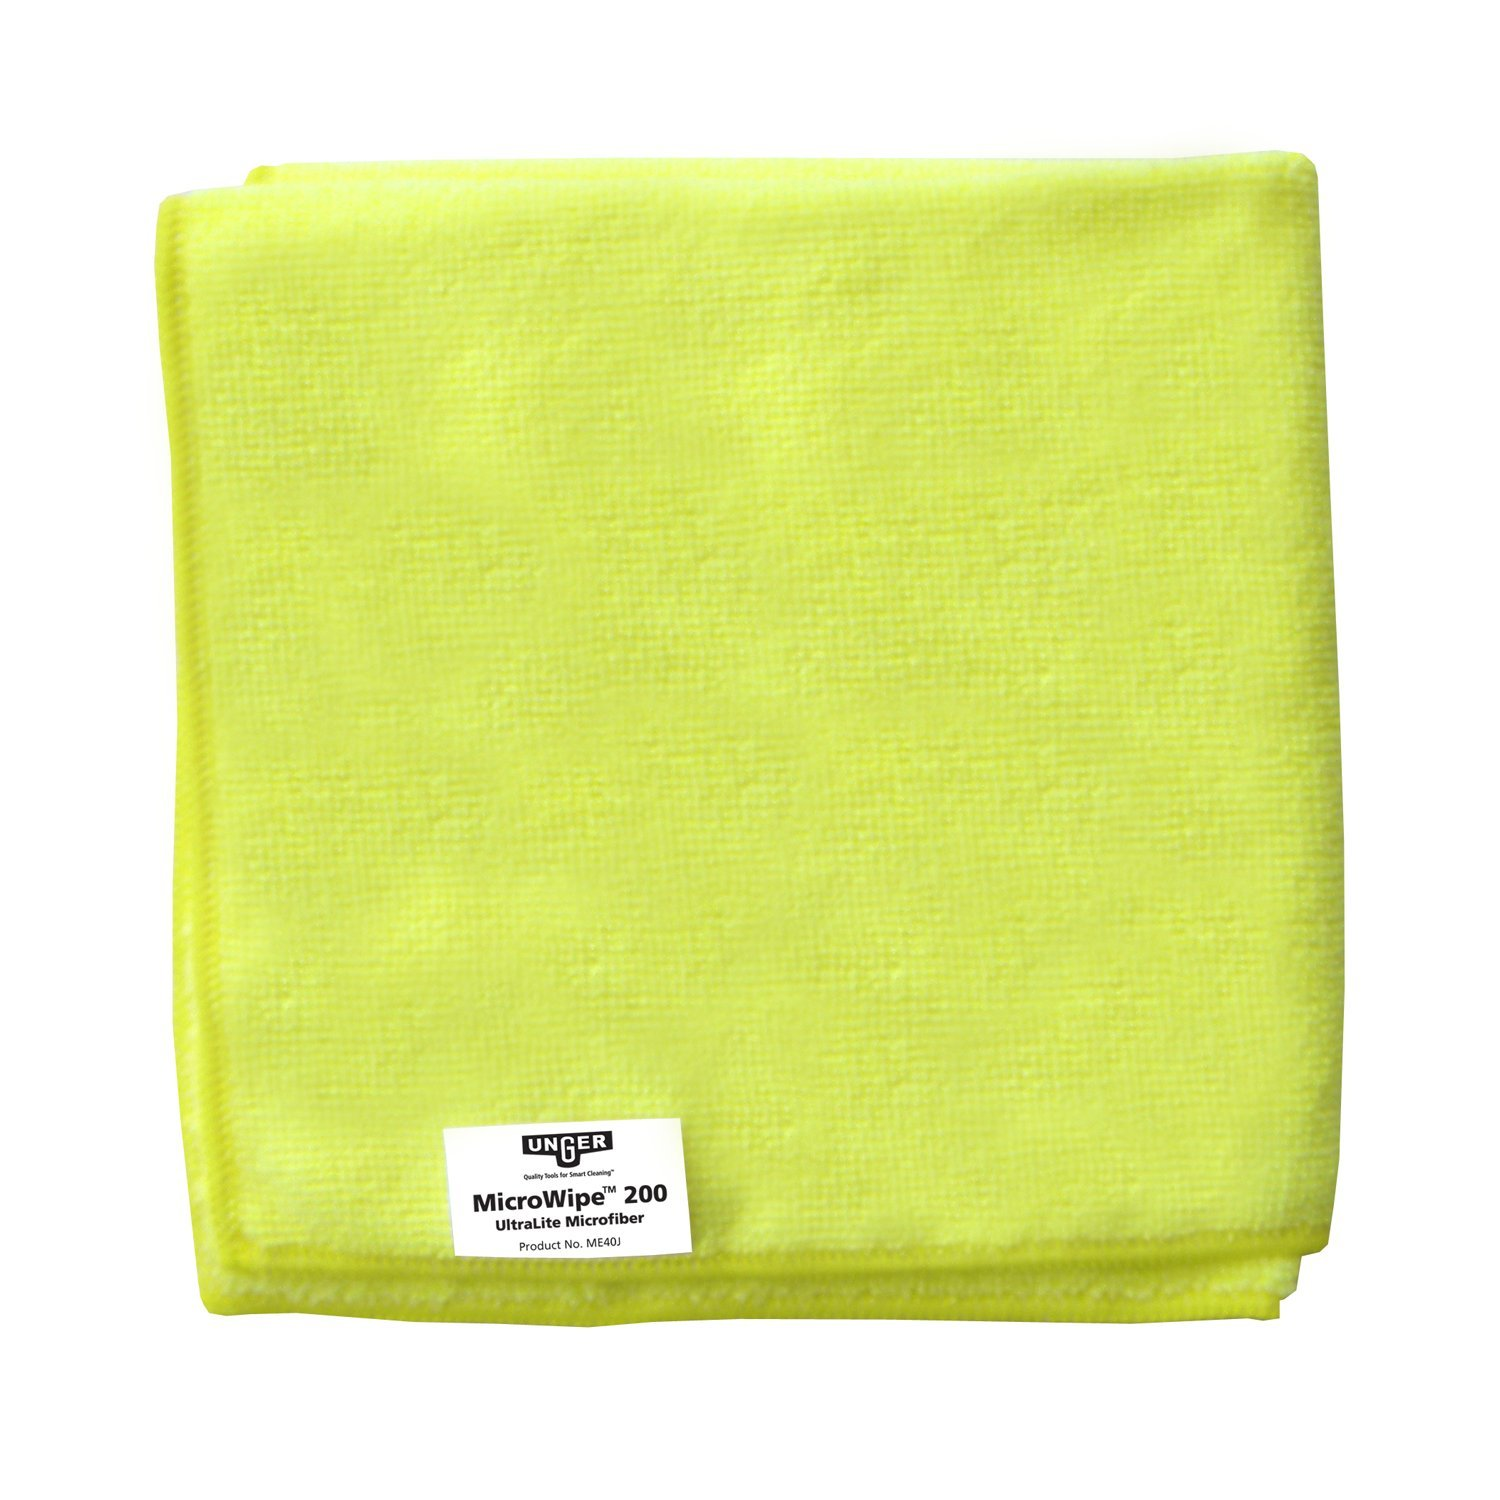 Unger ME40J MicroWipe Ultralite Microfiber Cloth, 16'' Length x 16'' Width, Yellow (Case of 10)